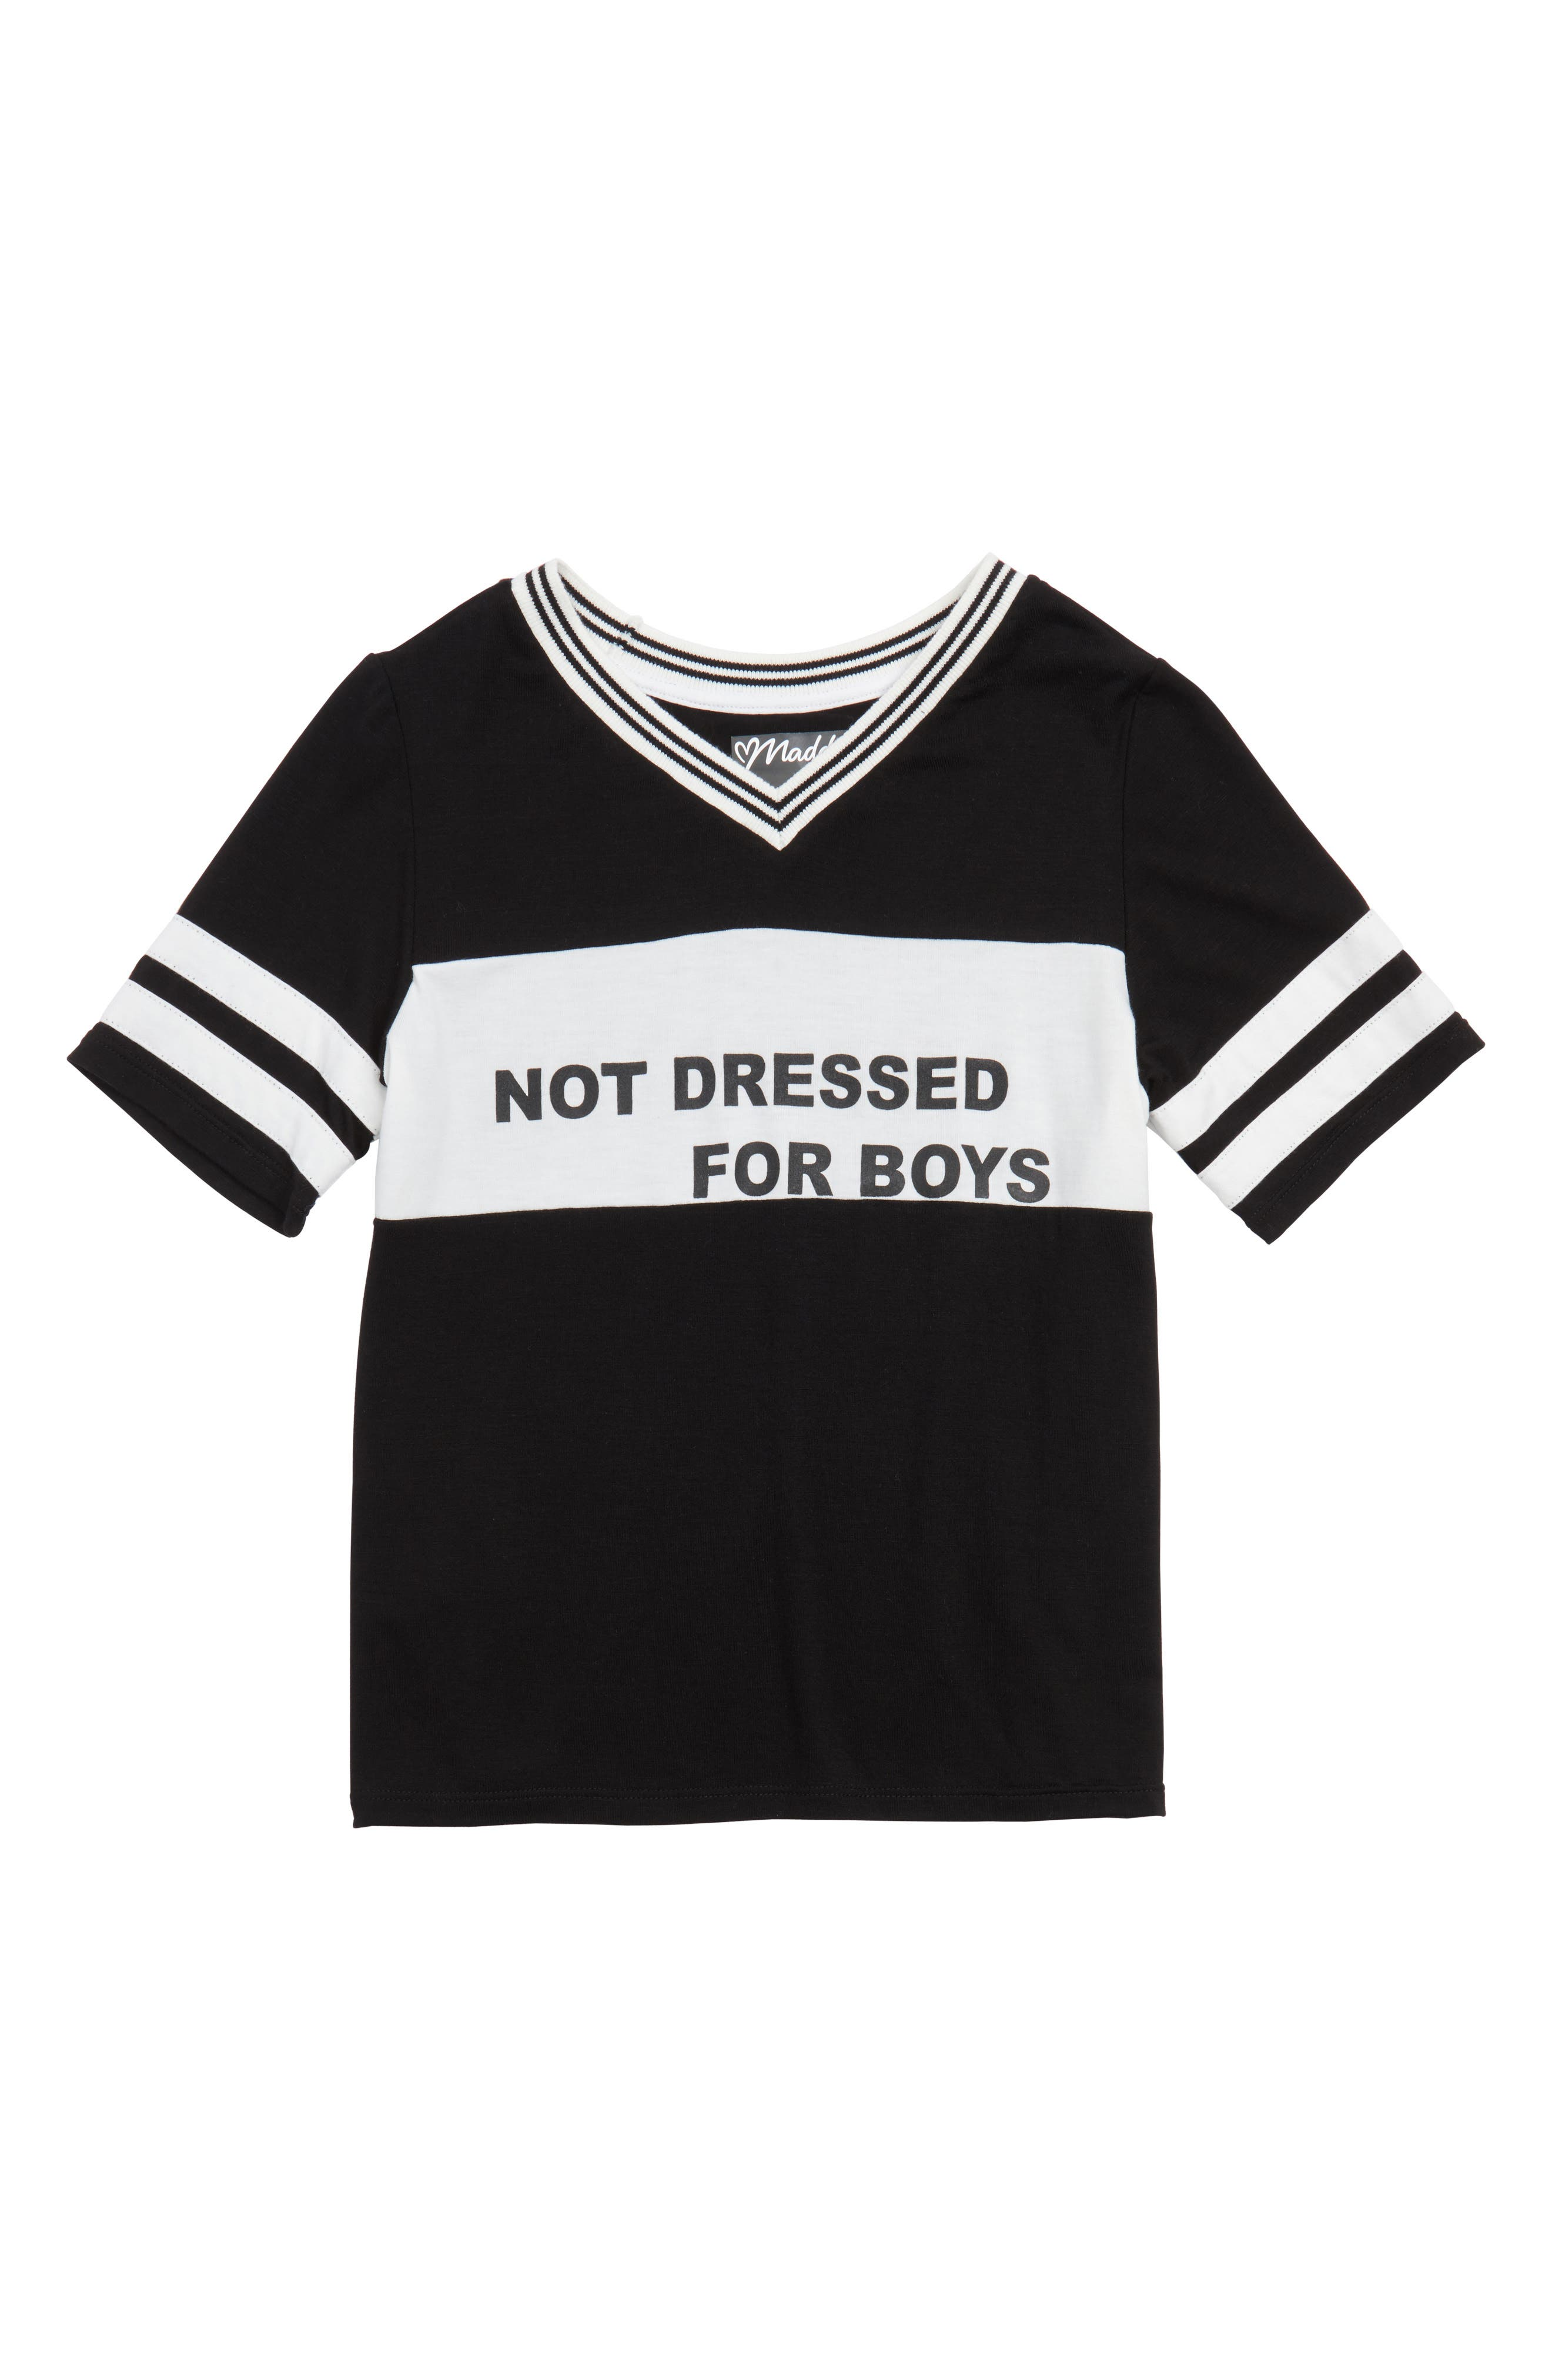 Not Dressed for Boys Tee,                             Main thumbnail 1, color,                             Black